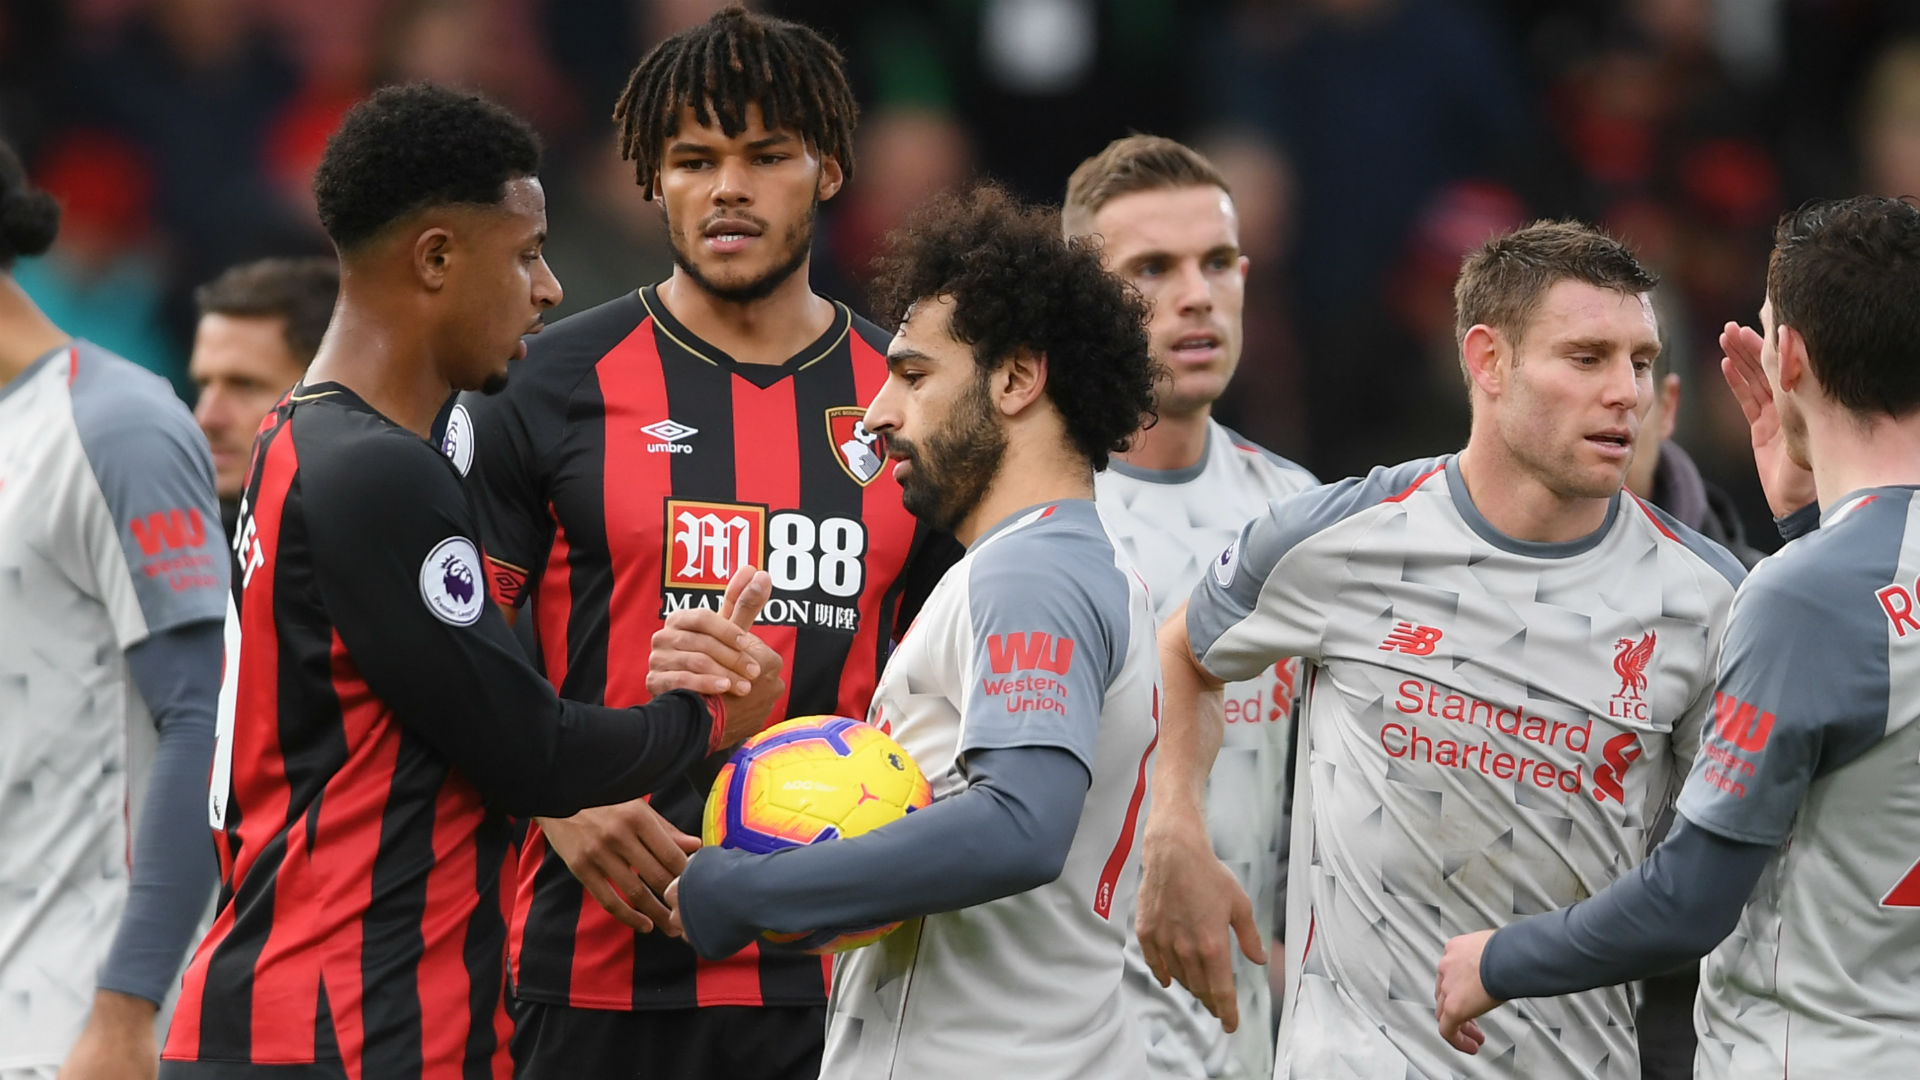 He's one of the best in the world – Klopp and Howe united in appreciation for Salah